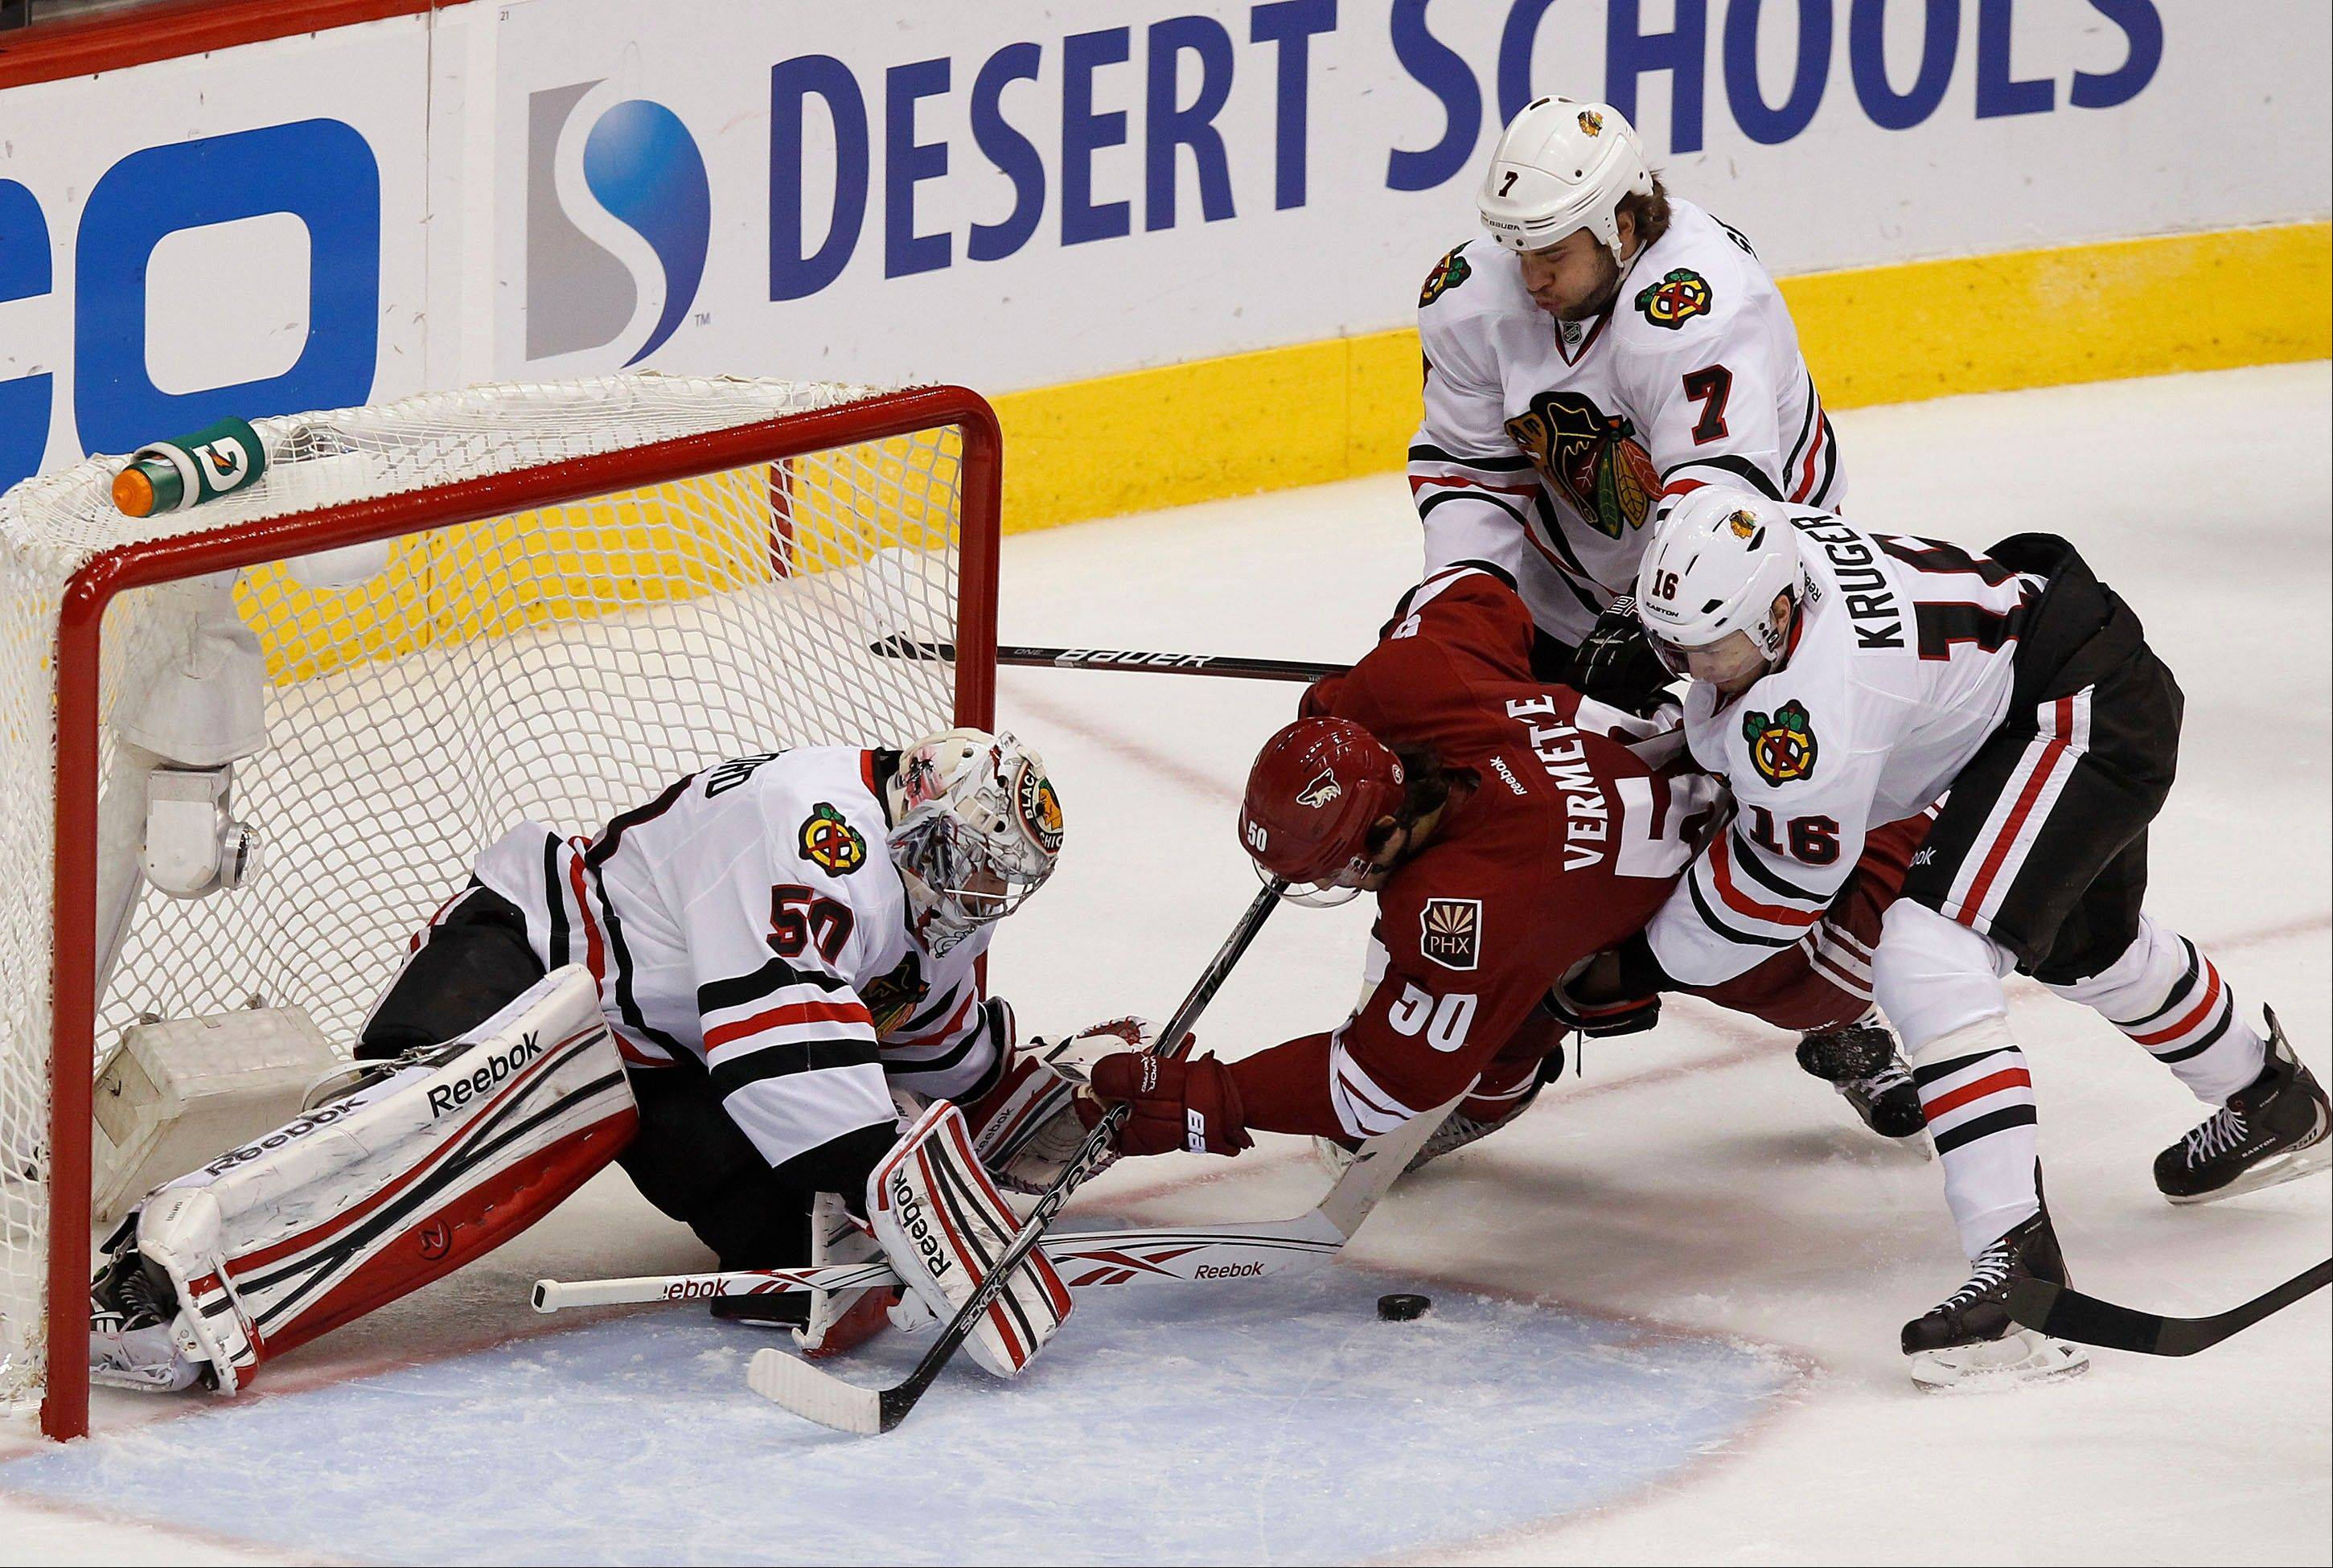 Chicago Blackhawks' Corey Crawford, left, makes a save on a shot by Phoenix Coyotes' Antoine Vermette (50) as Blackhawks' Marcus Kruger (16), of Sweden, and Brent Seabrook (7) defend during the first period in Game 5 of an NHL hockey Stanley Cup first-round playoff series Saturday, April 21, 2012, in Glendale, Ariz.